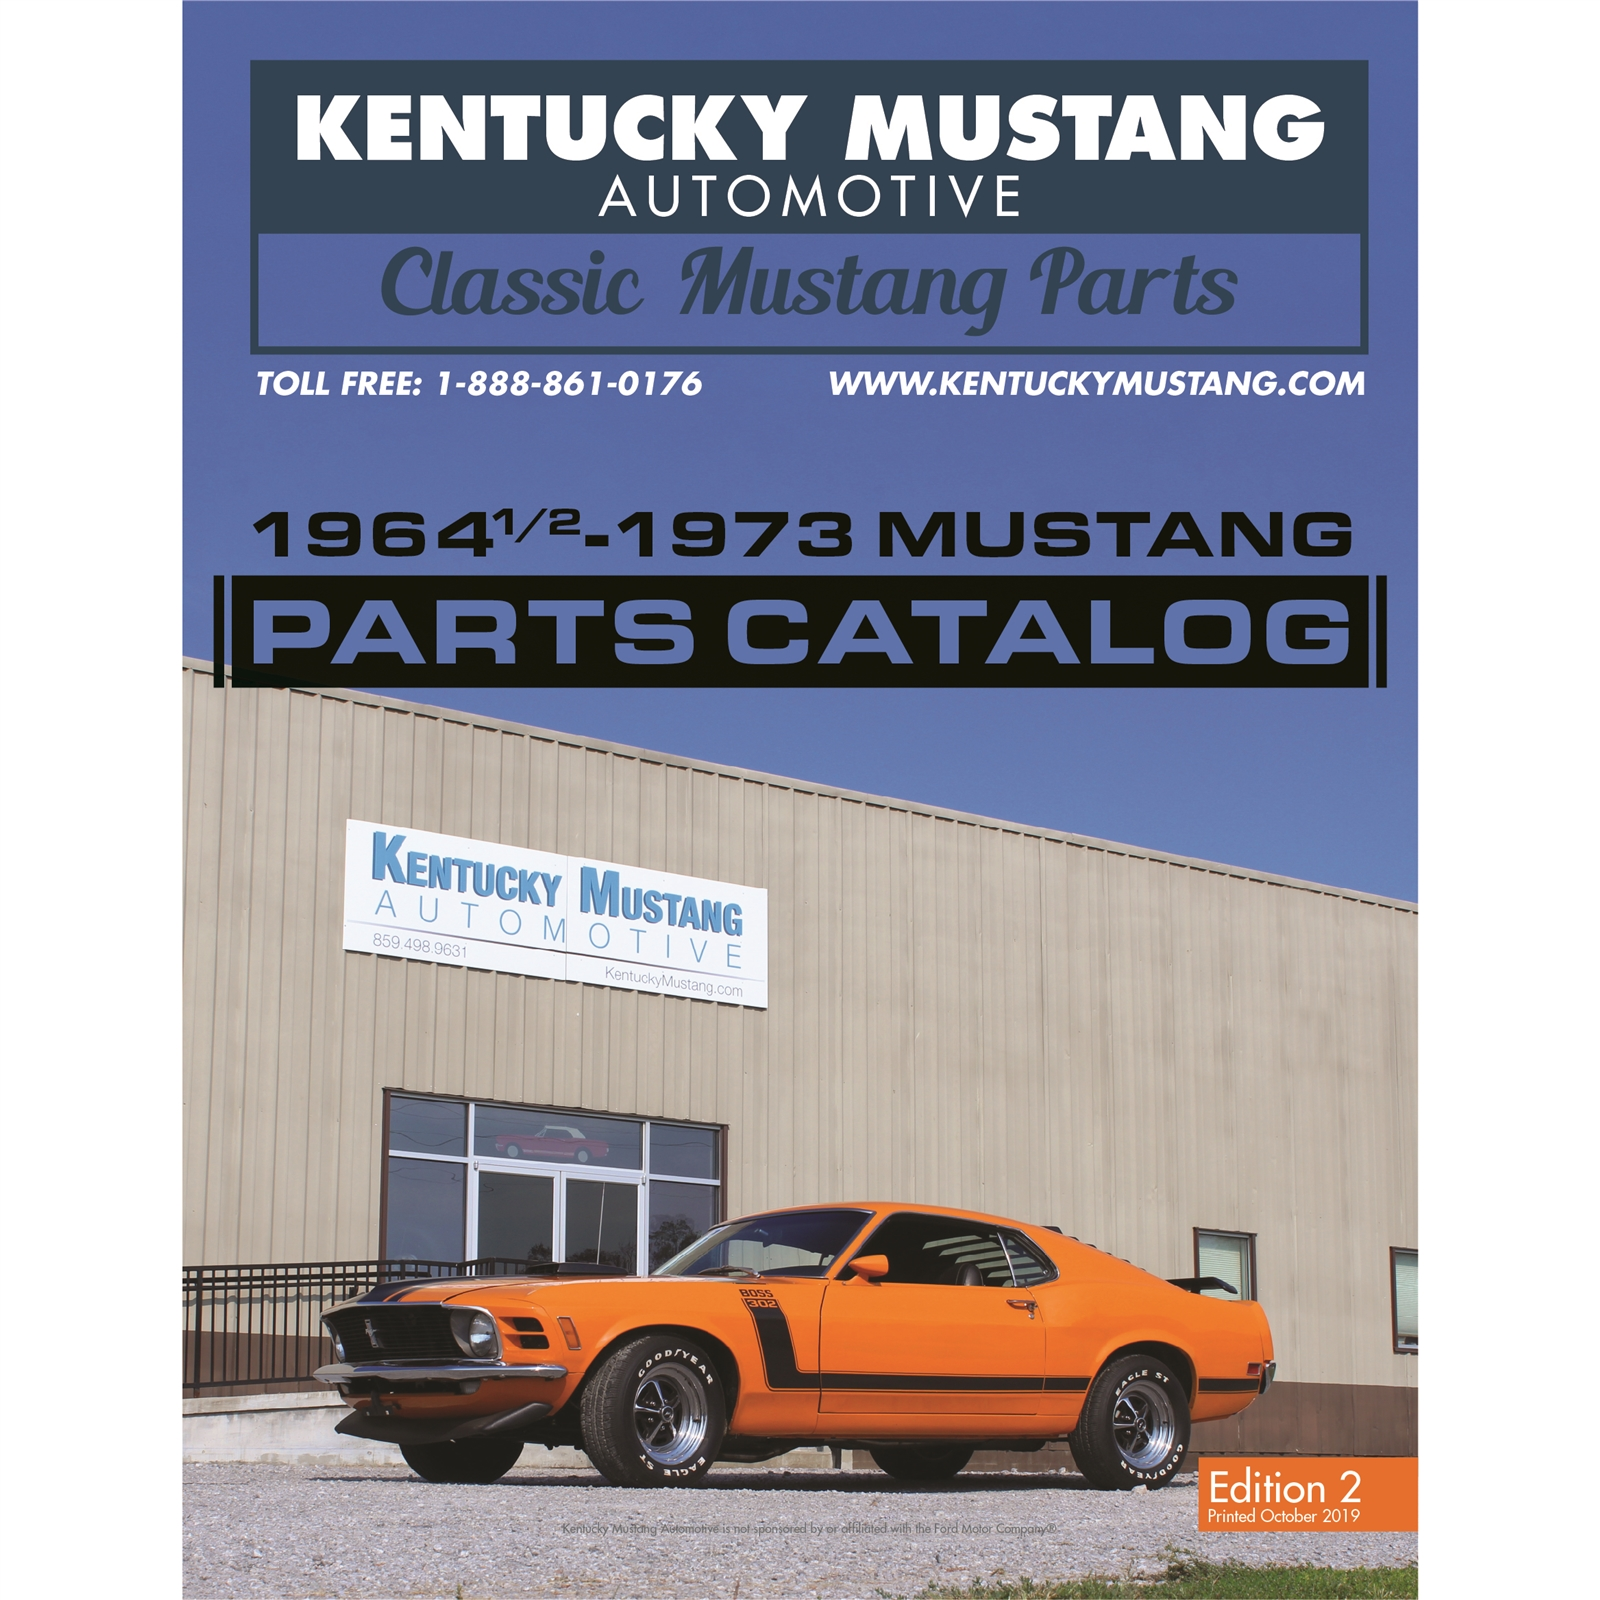 Kentucky Mustang Automotive Catalog 1964 1/2 - 1973 Mustang Parts (Free to  lower 48 US states)